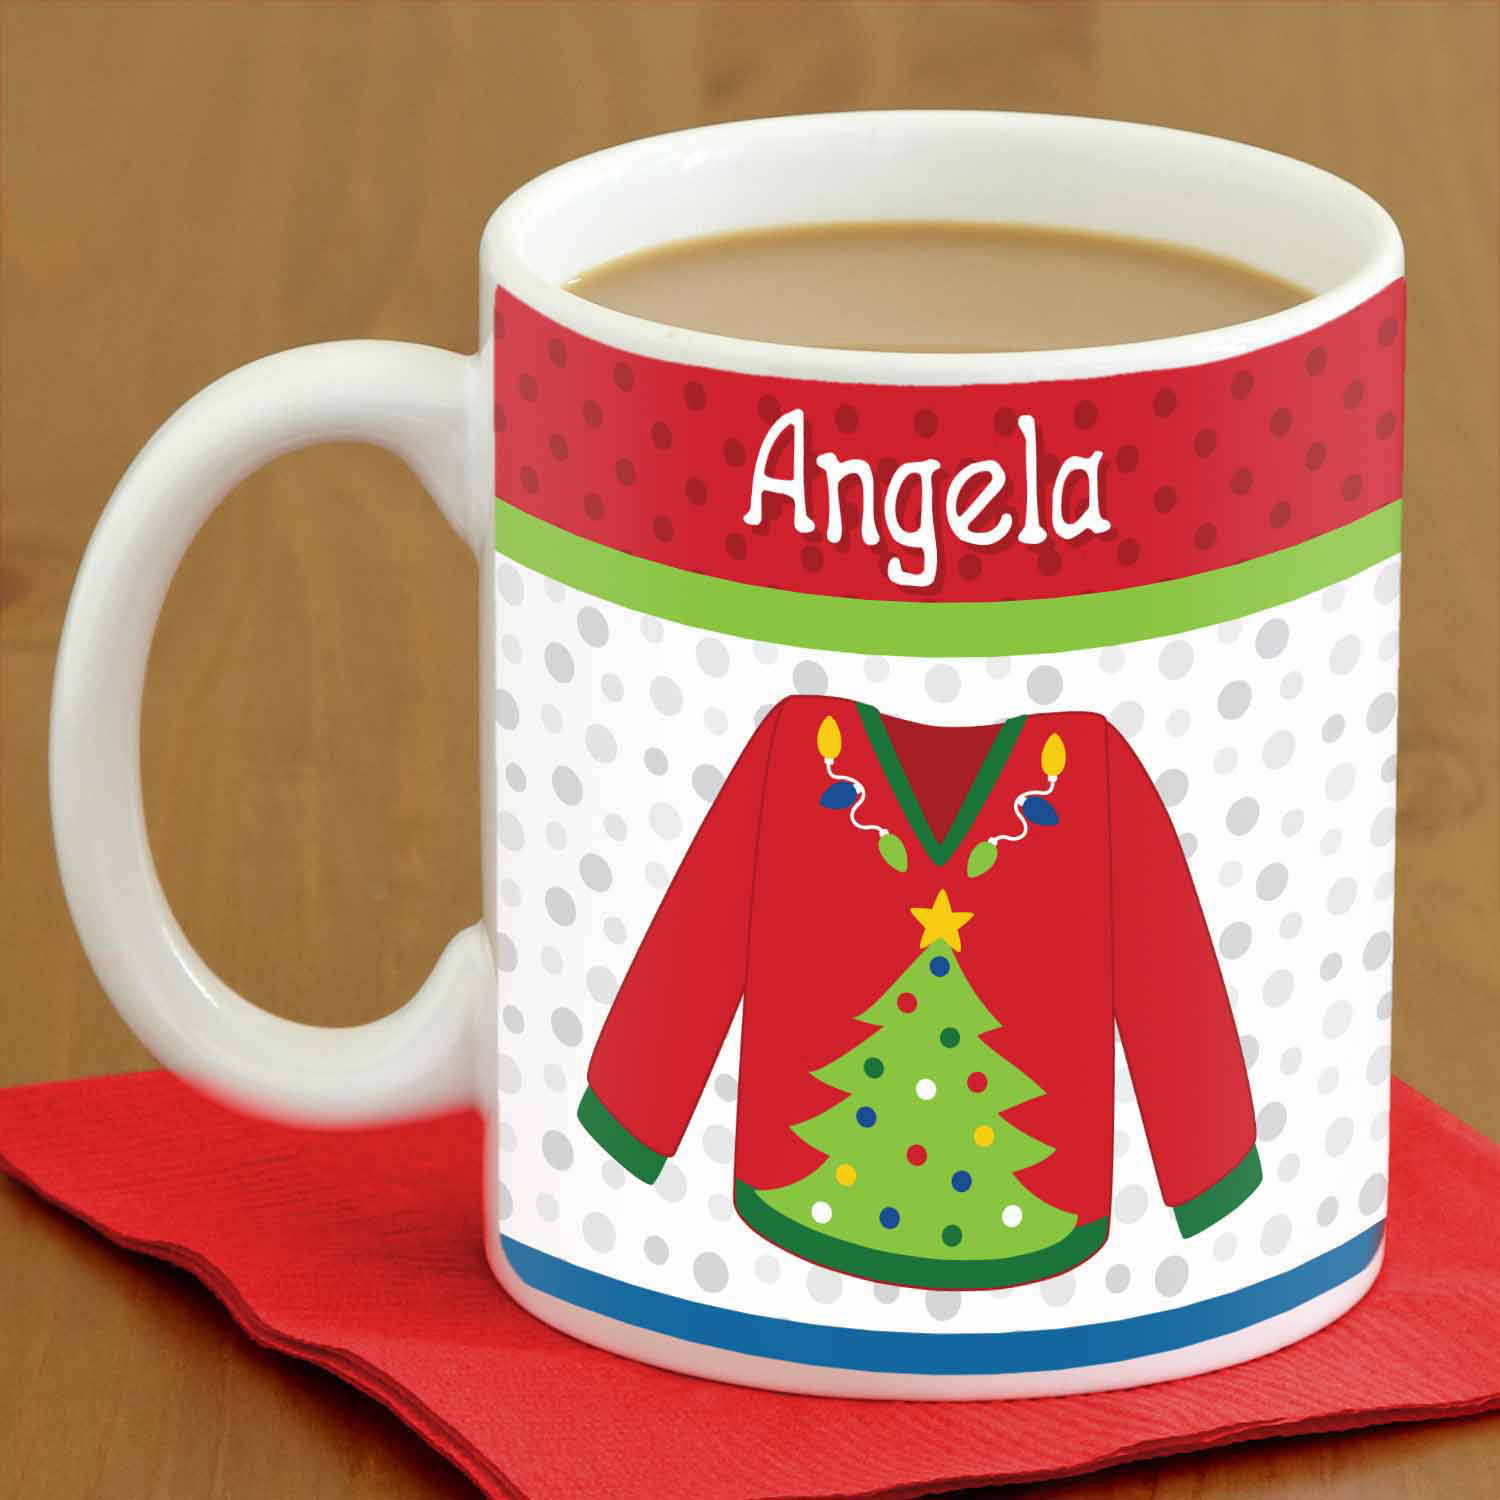 Personalized Ugly Christmas Sweater Coffee Mug, 15 oz - Snowman, Availble in 6 Designs